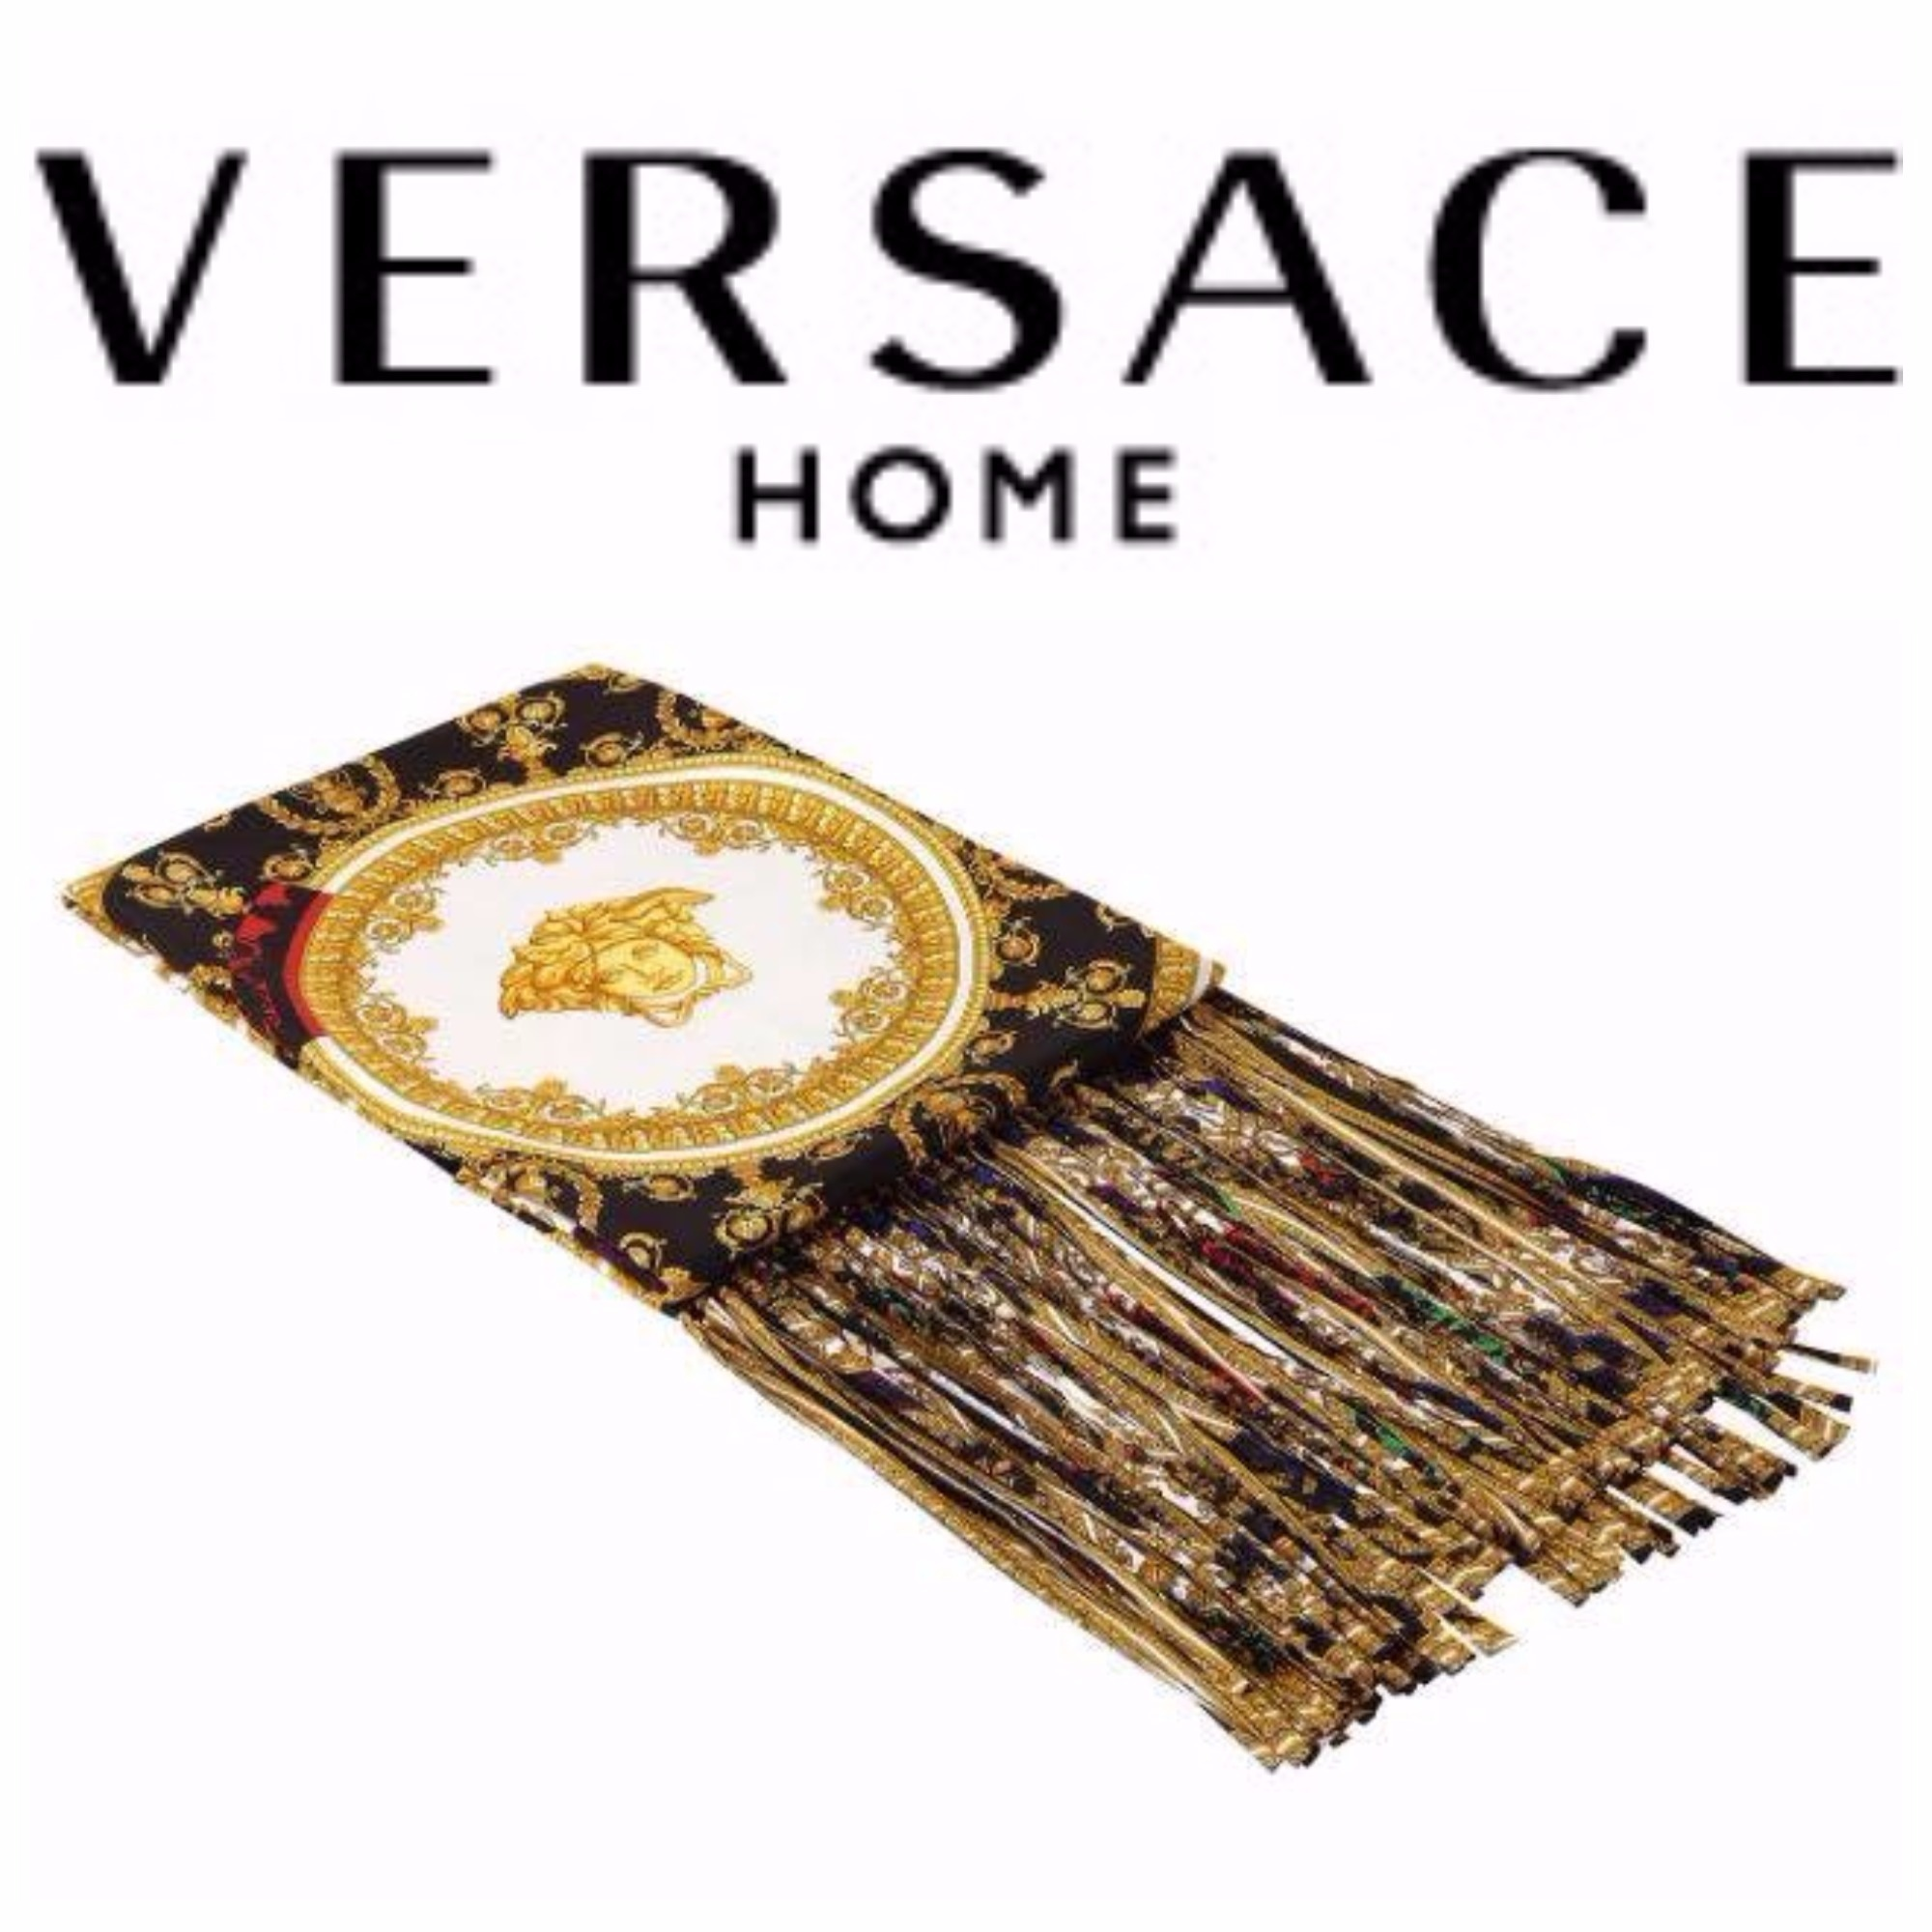 【VERSACE HOME】I♡BAROQUE プリント シルク ブランケット